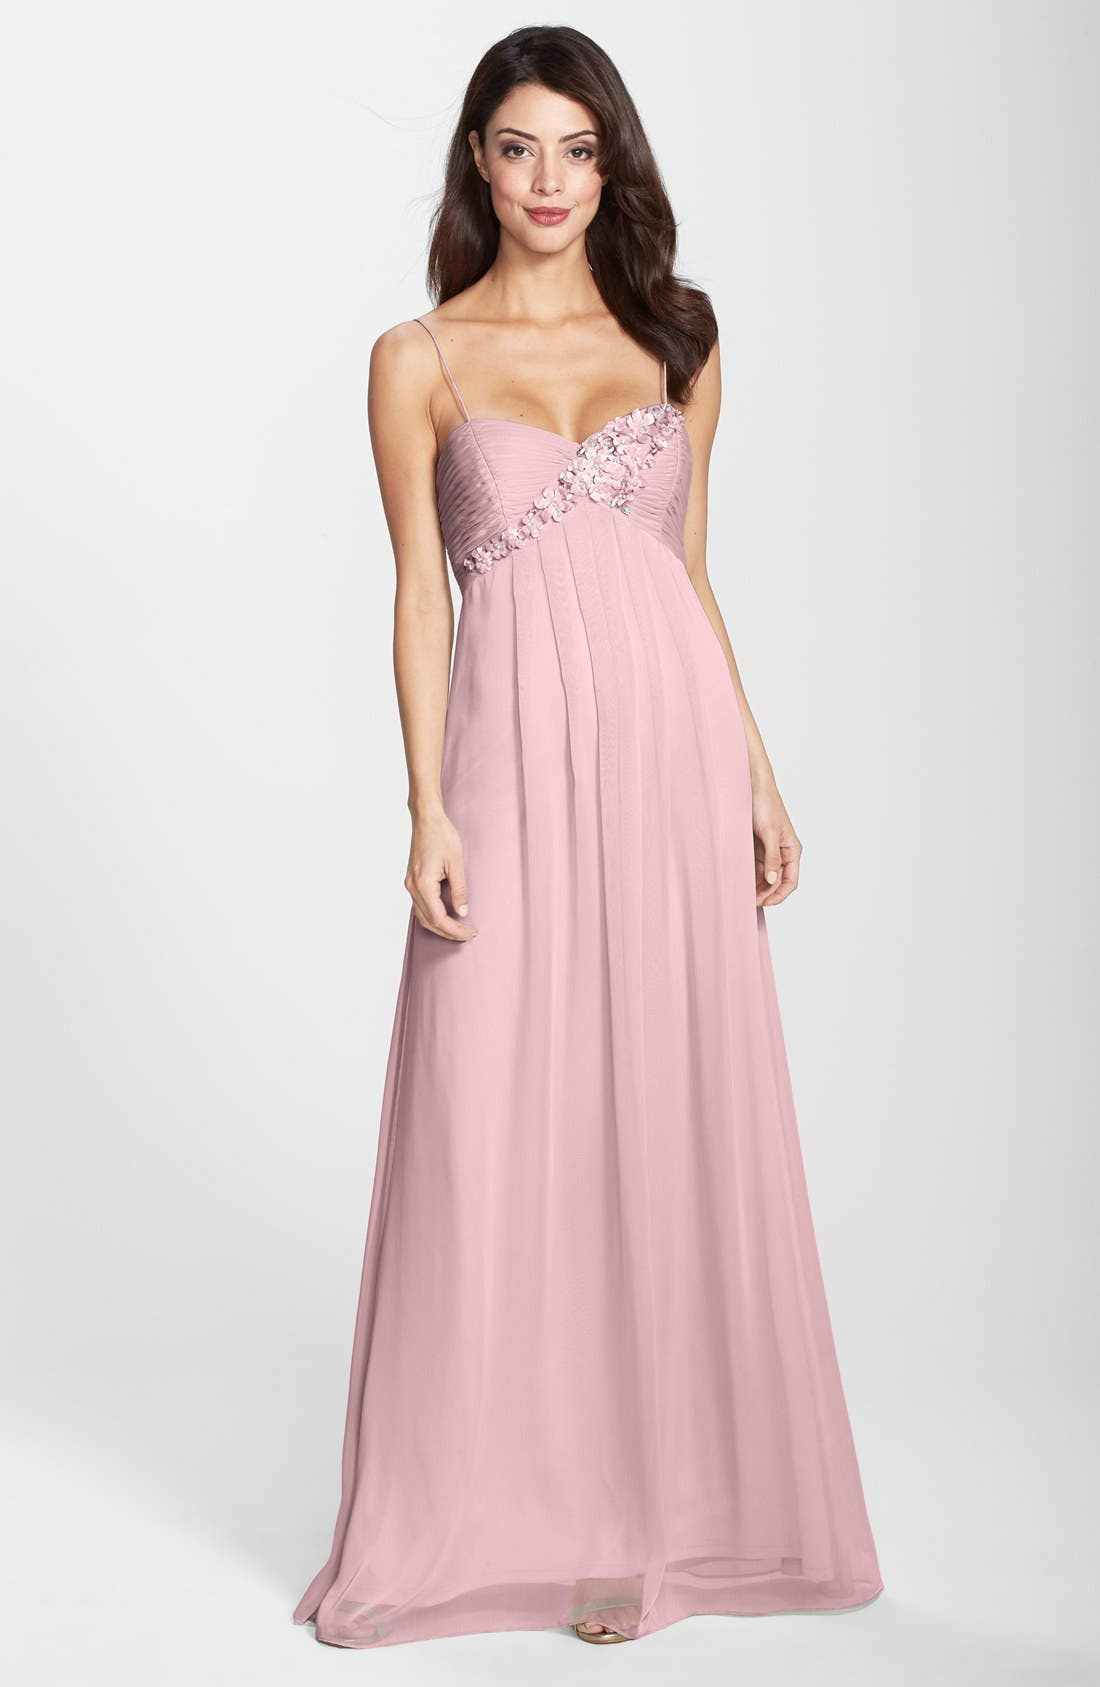 Alternate Image 1 Selected - Adrianna Papell Floral Appliqué Chiffon Dress